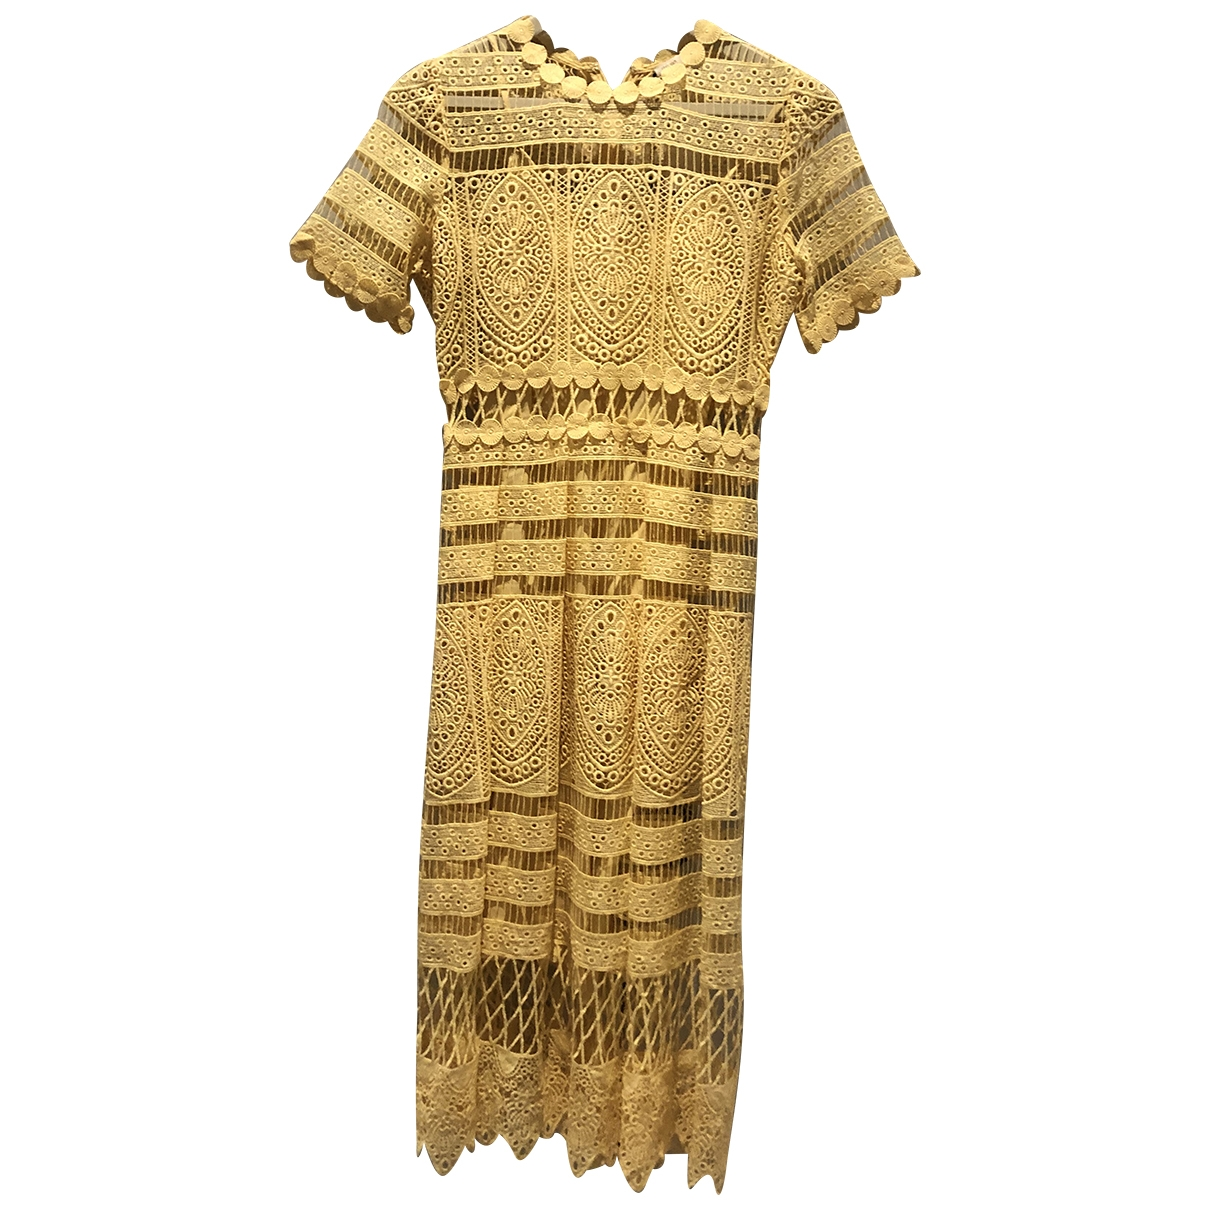 Maje Spring Summer 2019 Yellow Lace dress for Women 1 0-5